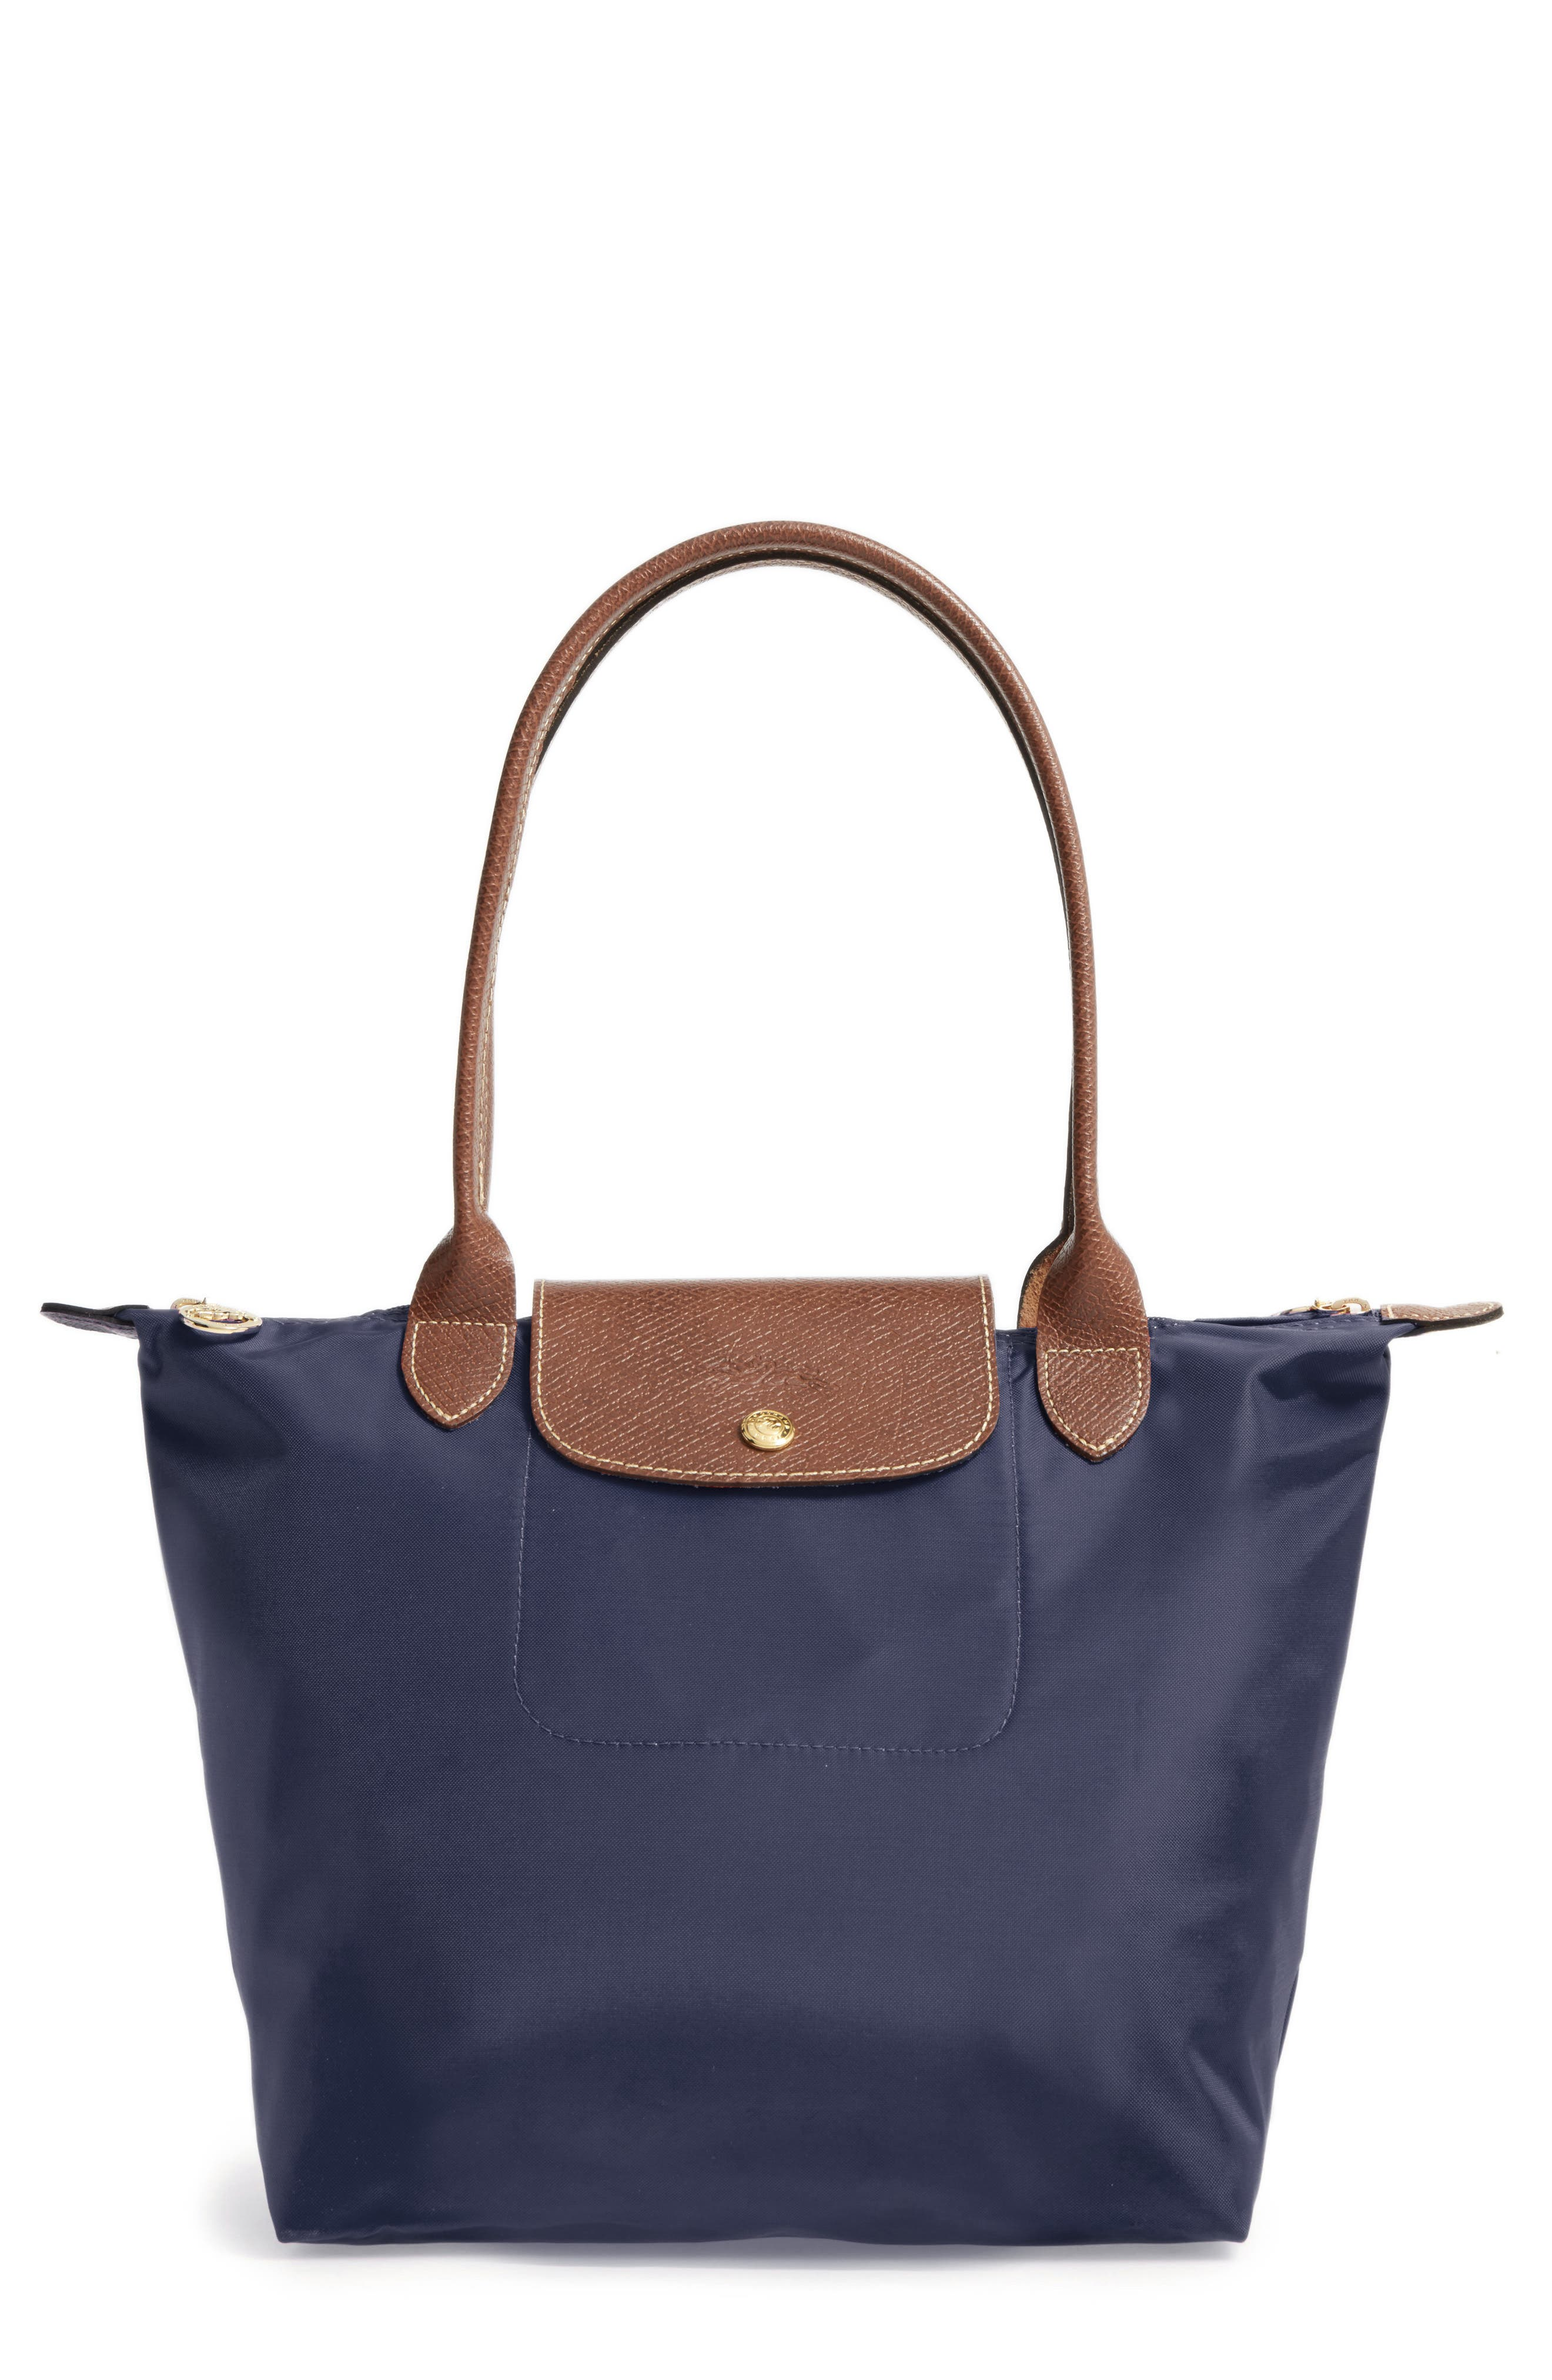 LONGCHAMP, 'Small Le Pliage' Tote, Main thumbnail 1, color, NEW NAVY